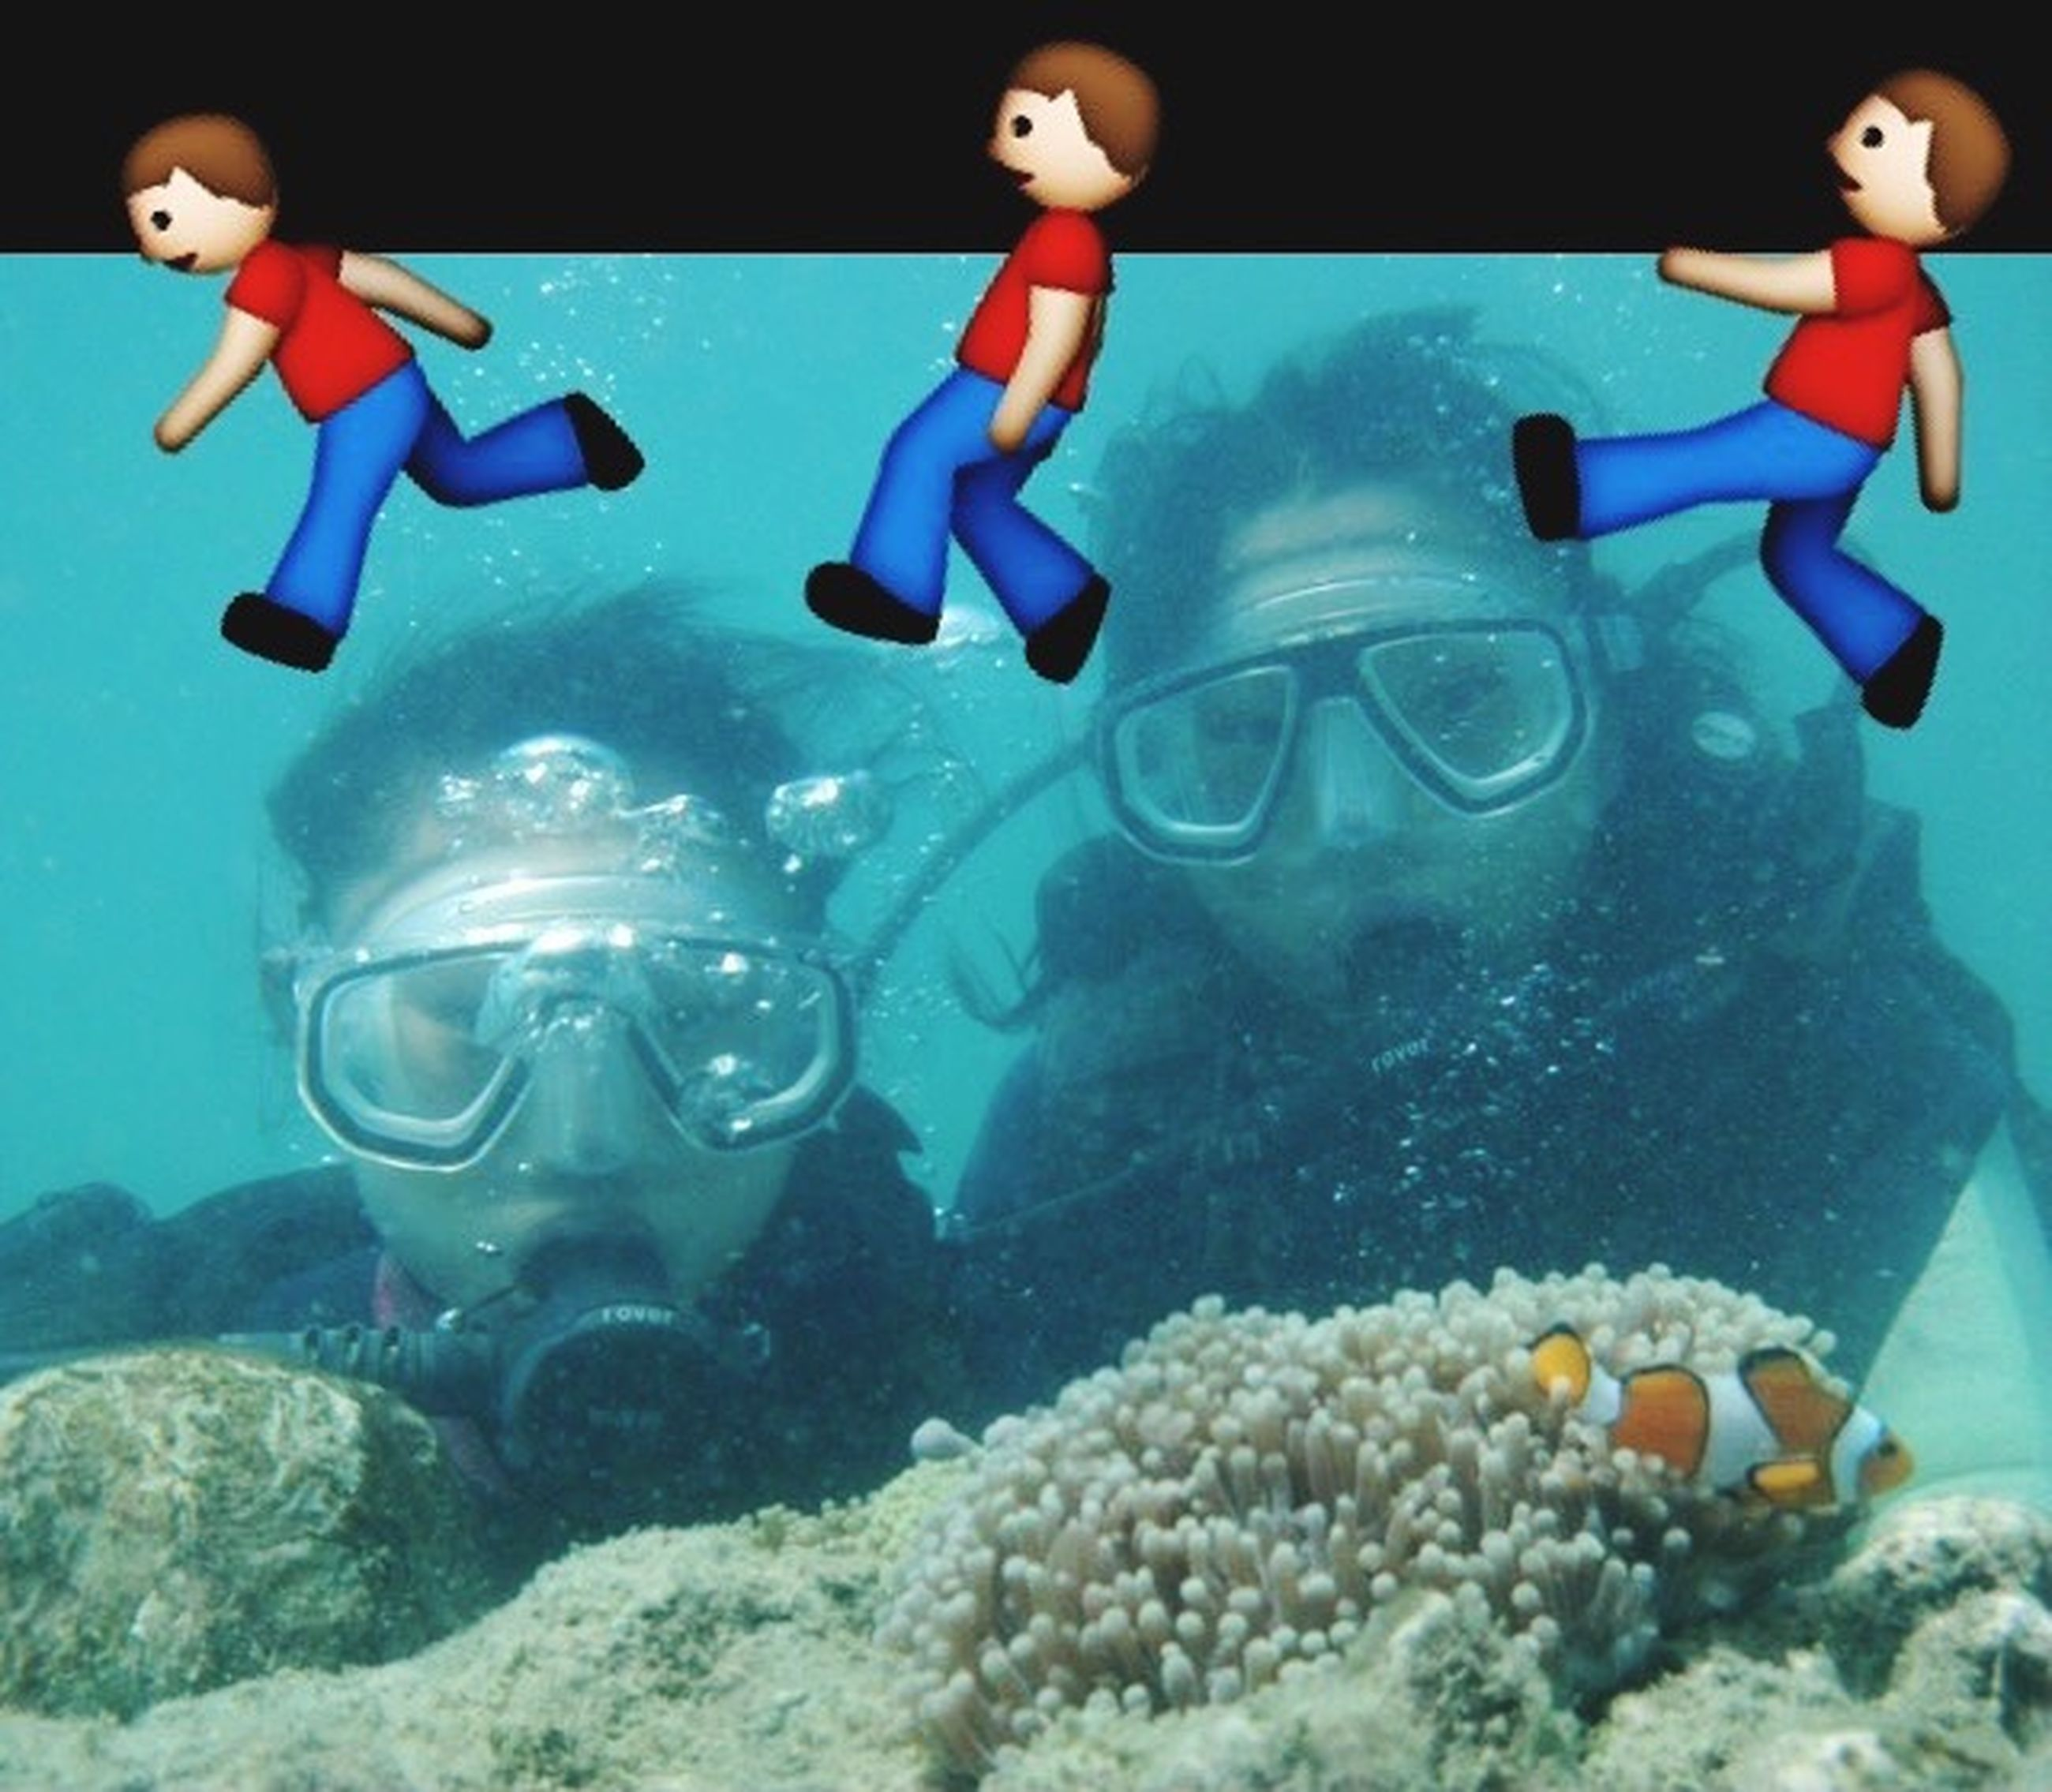 swimming, underwater, water, leisure activity, sea, lifestyles, blue, childhood, full length, undersea, adventure, fun, fish, indoors, toy, enjoyment, mid-air, person